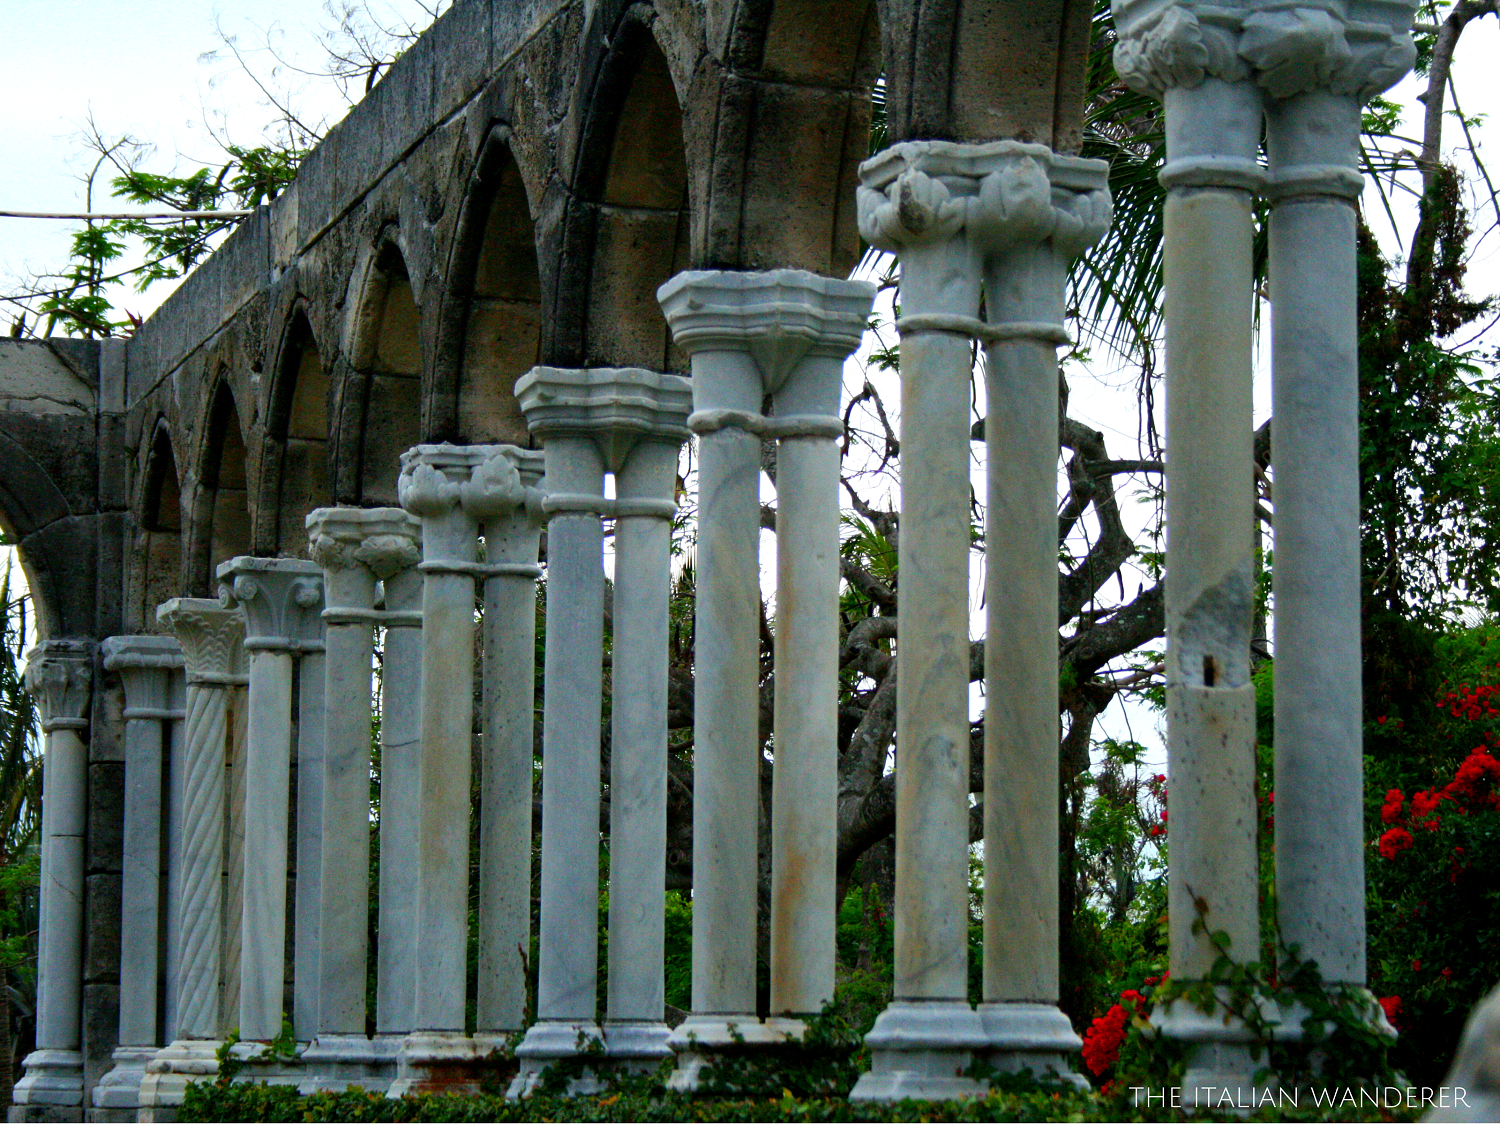 Details of the colonnades of the French Cloister at Paradise Island